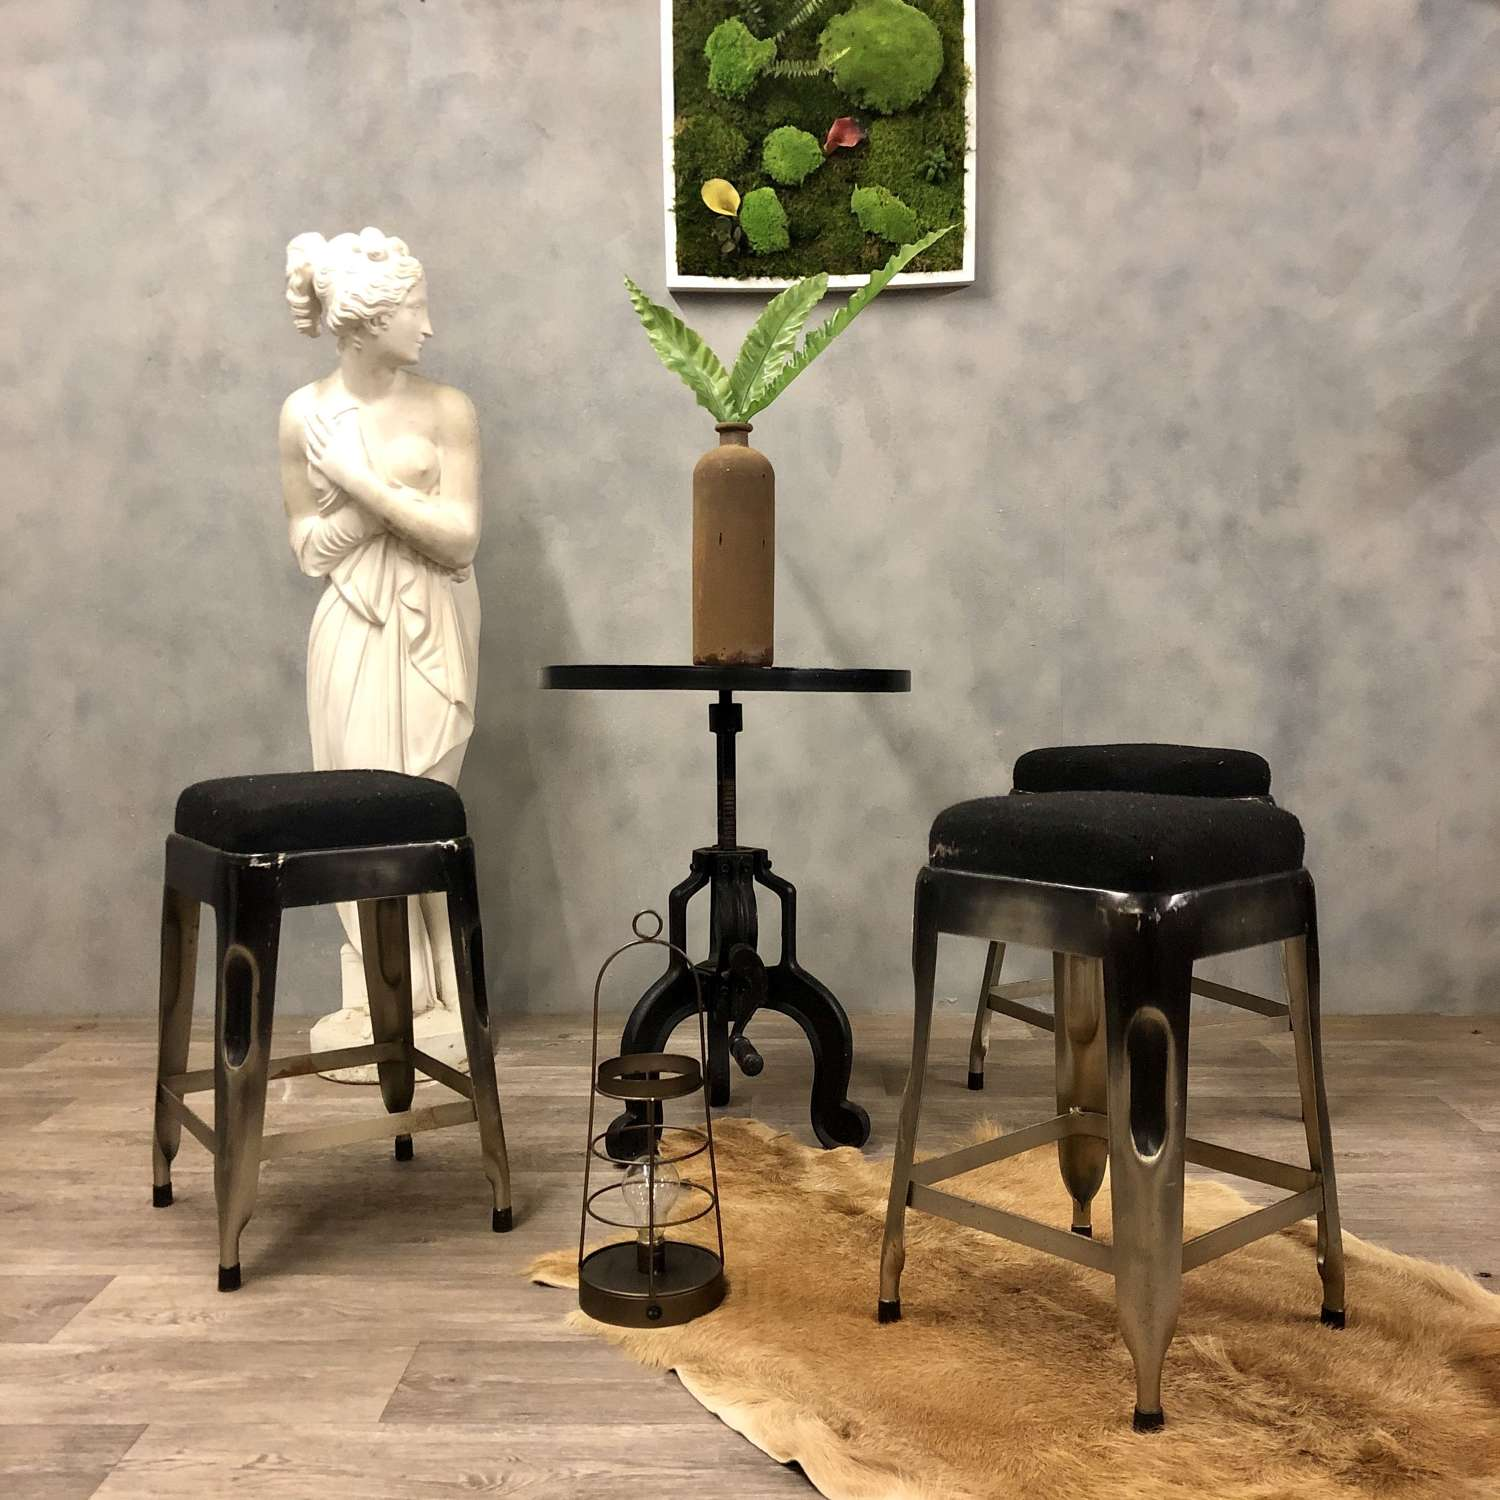 Cast iron outdoor garden table and stools